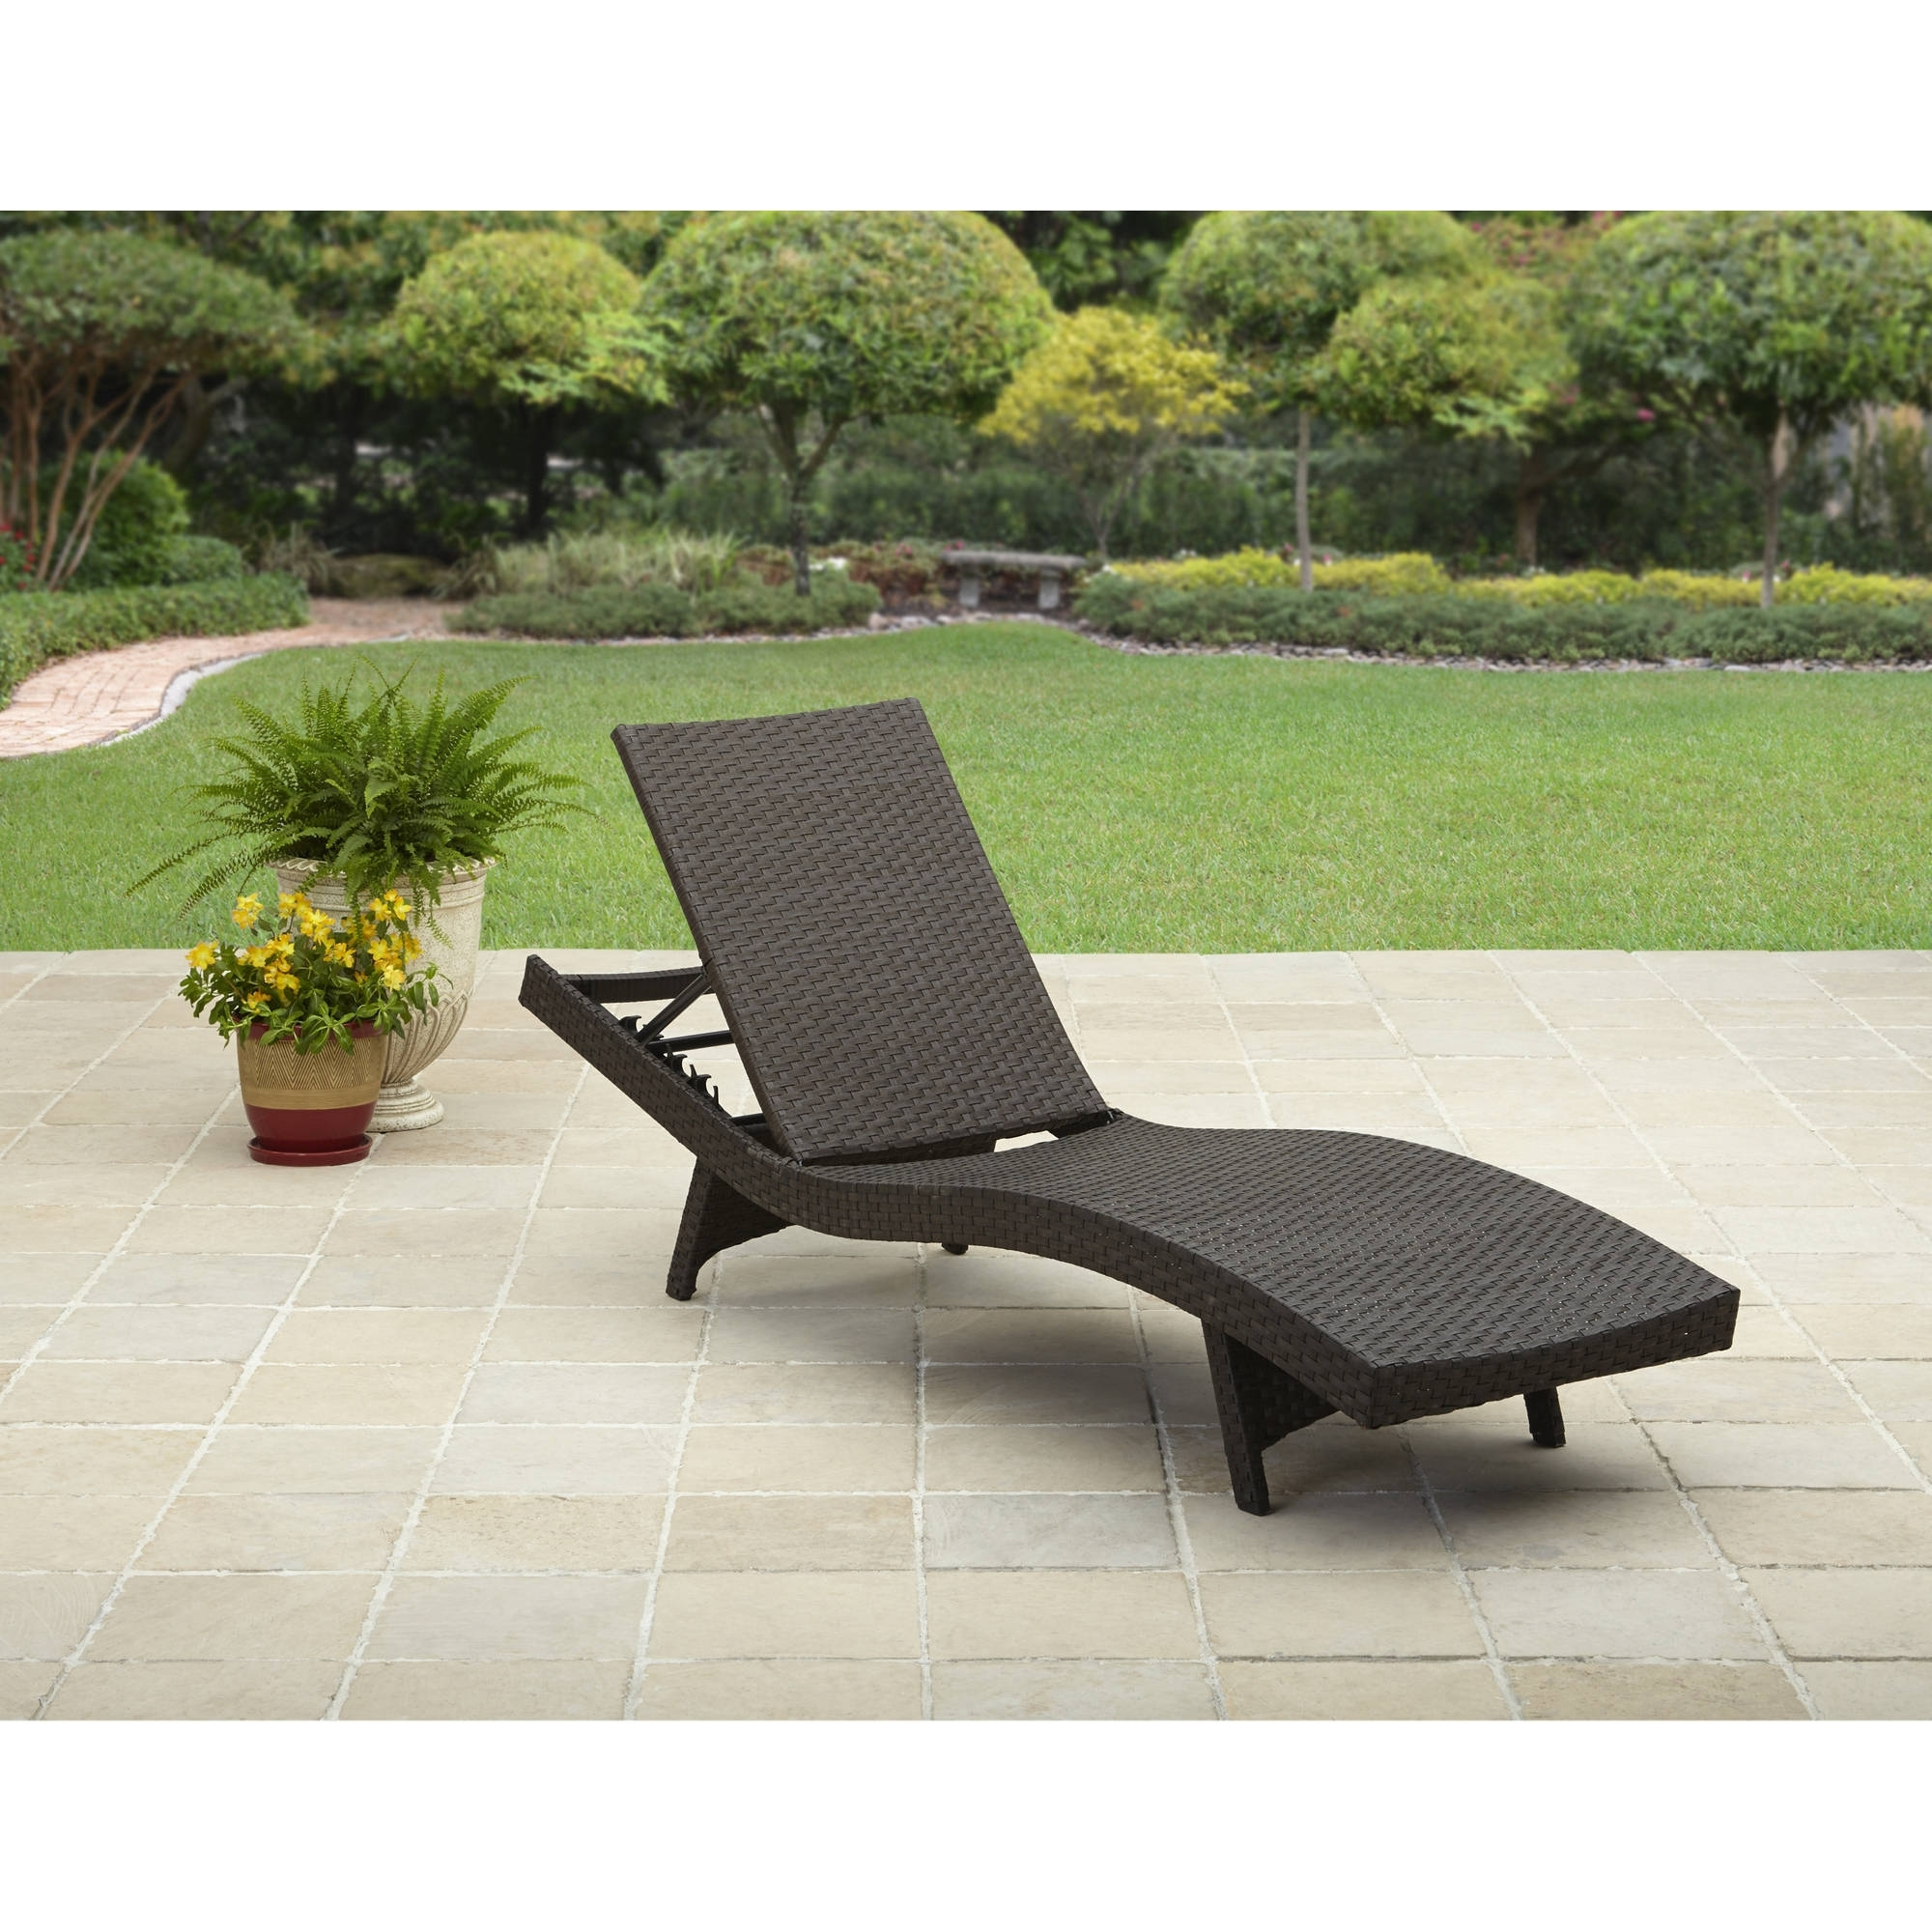 Cheap Folding Chaise Lounge Chairs For Outdoor Throughout 2018 Chair Cheap Outdoor Lounge Chairs Walmart Within Patio Chaise (View 6 of 15)